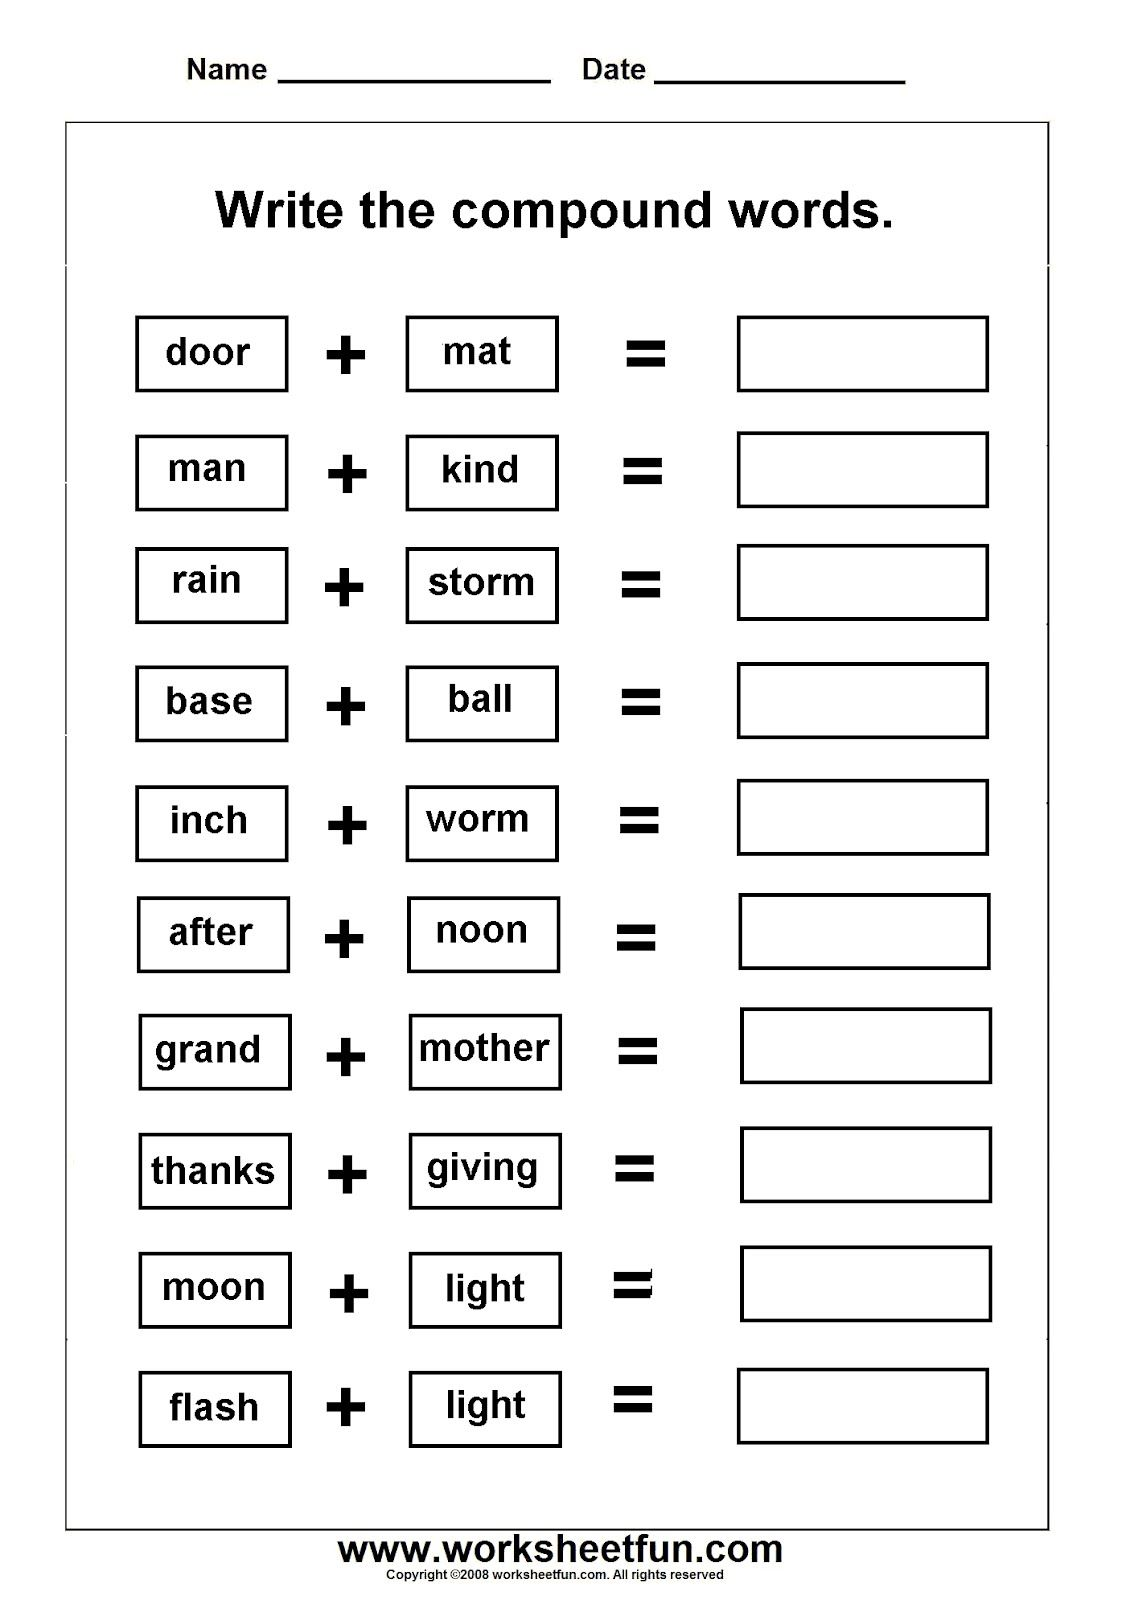 Worksheets Compound Words Worksheets worksheets on compound words with pictures ela activities pictures